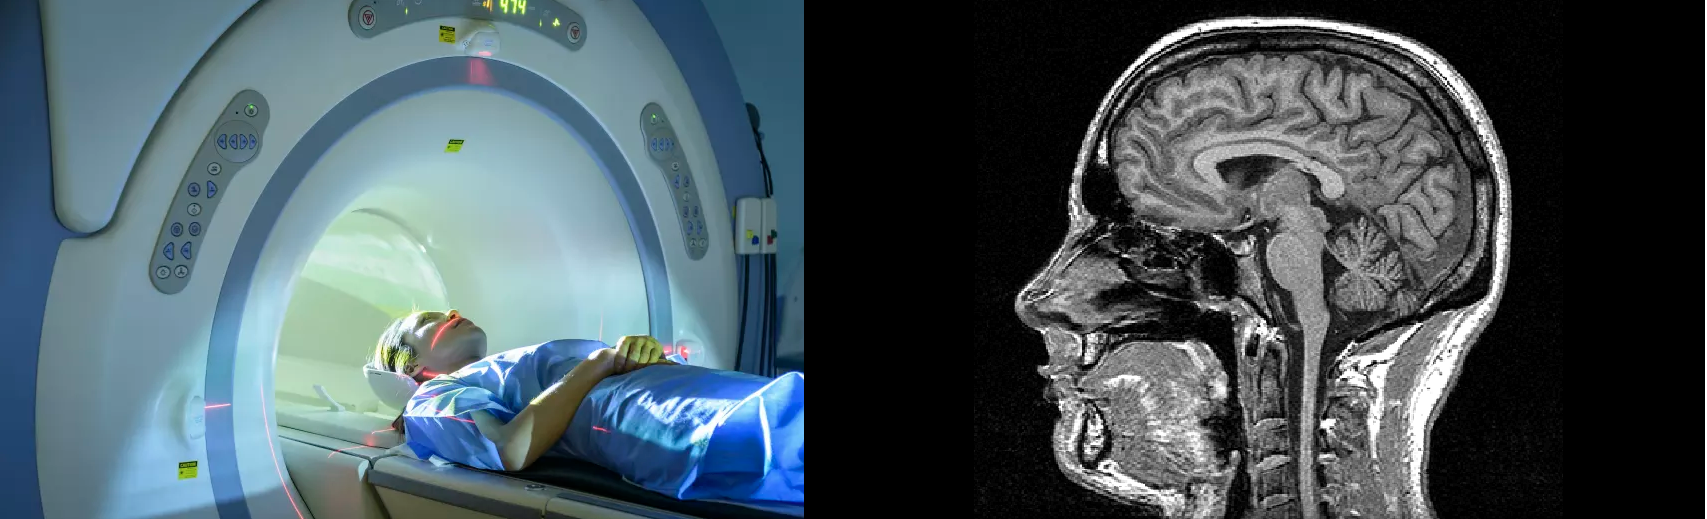 (Left) A patient entering an MRI scanner positioned to produce an image of the brain. Credit: Monty Rakusen, Getty Images. (Right) An MRI scan of the brain, hopefully displaying the time and effort it takes to correctly analyse an MRI scan. AI-assistance could be of great use in a field such as Radiology with the time-saving measures it promises, without compromising an expert level of accuracy. Credit: BrainFacts